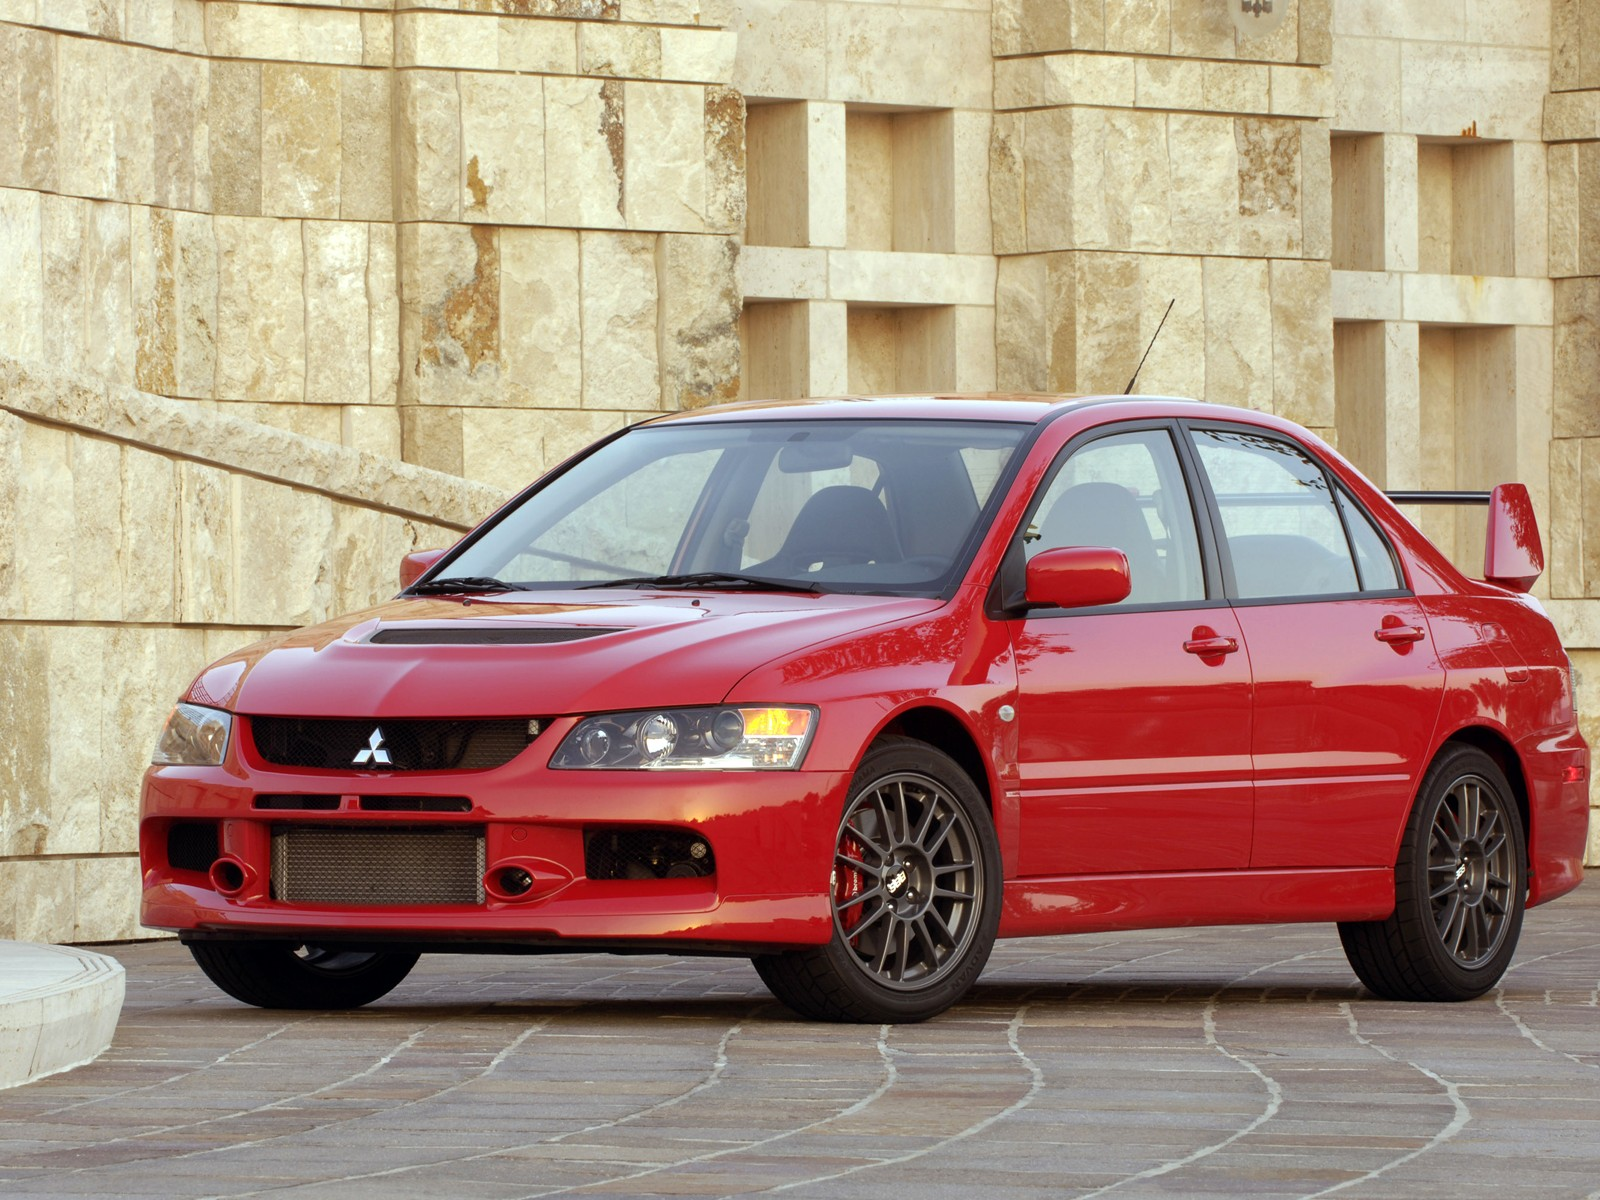 mitsubishi lancer viii (8) 1995 wallpaper